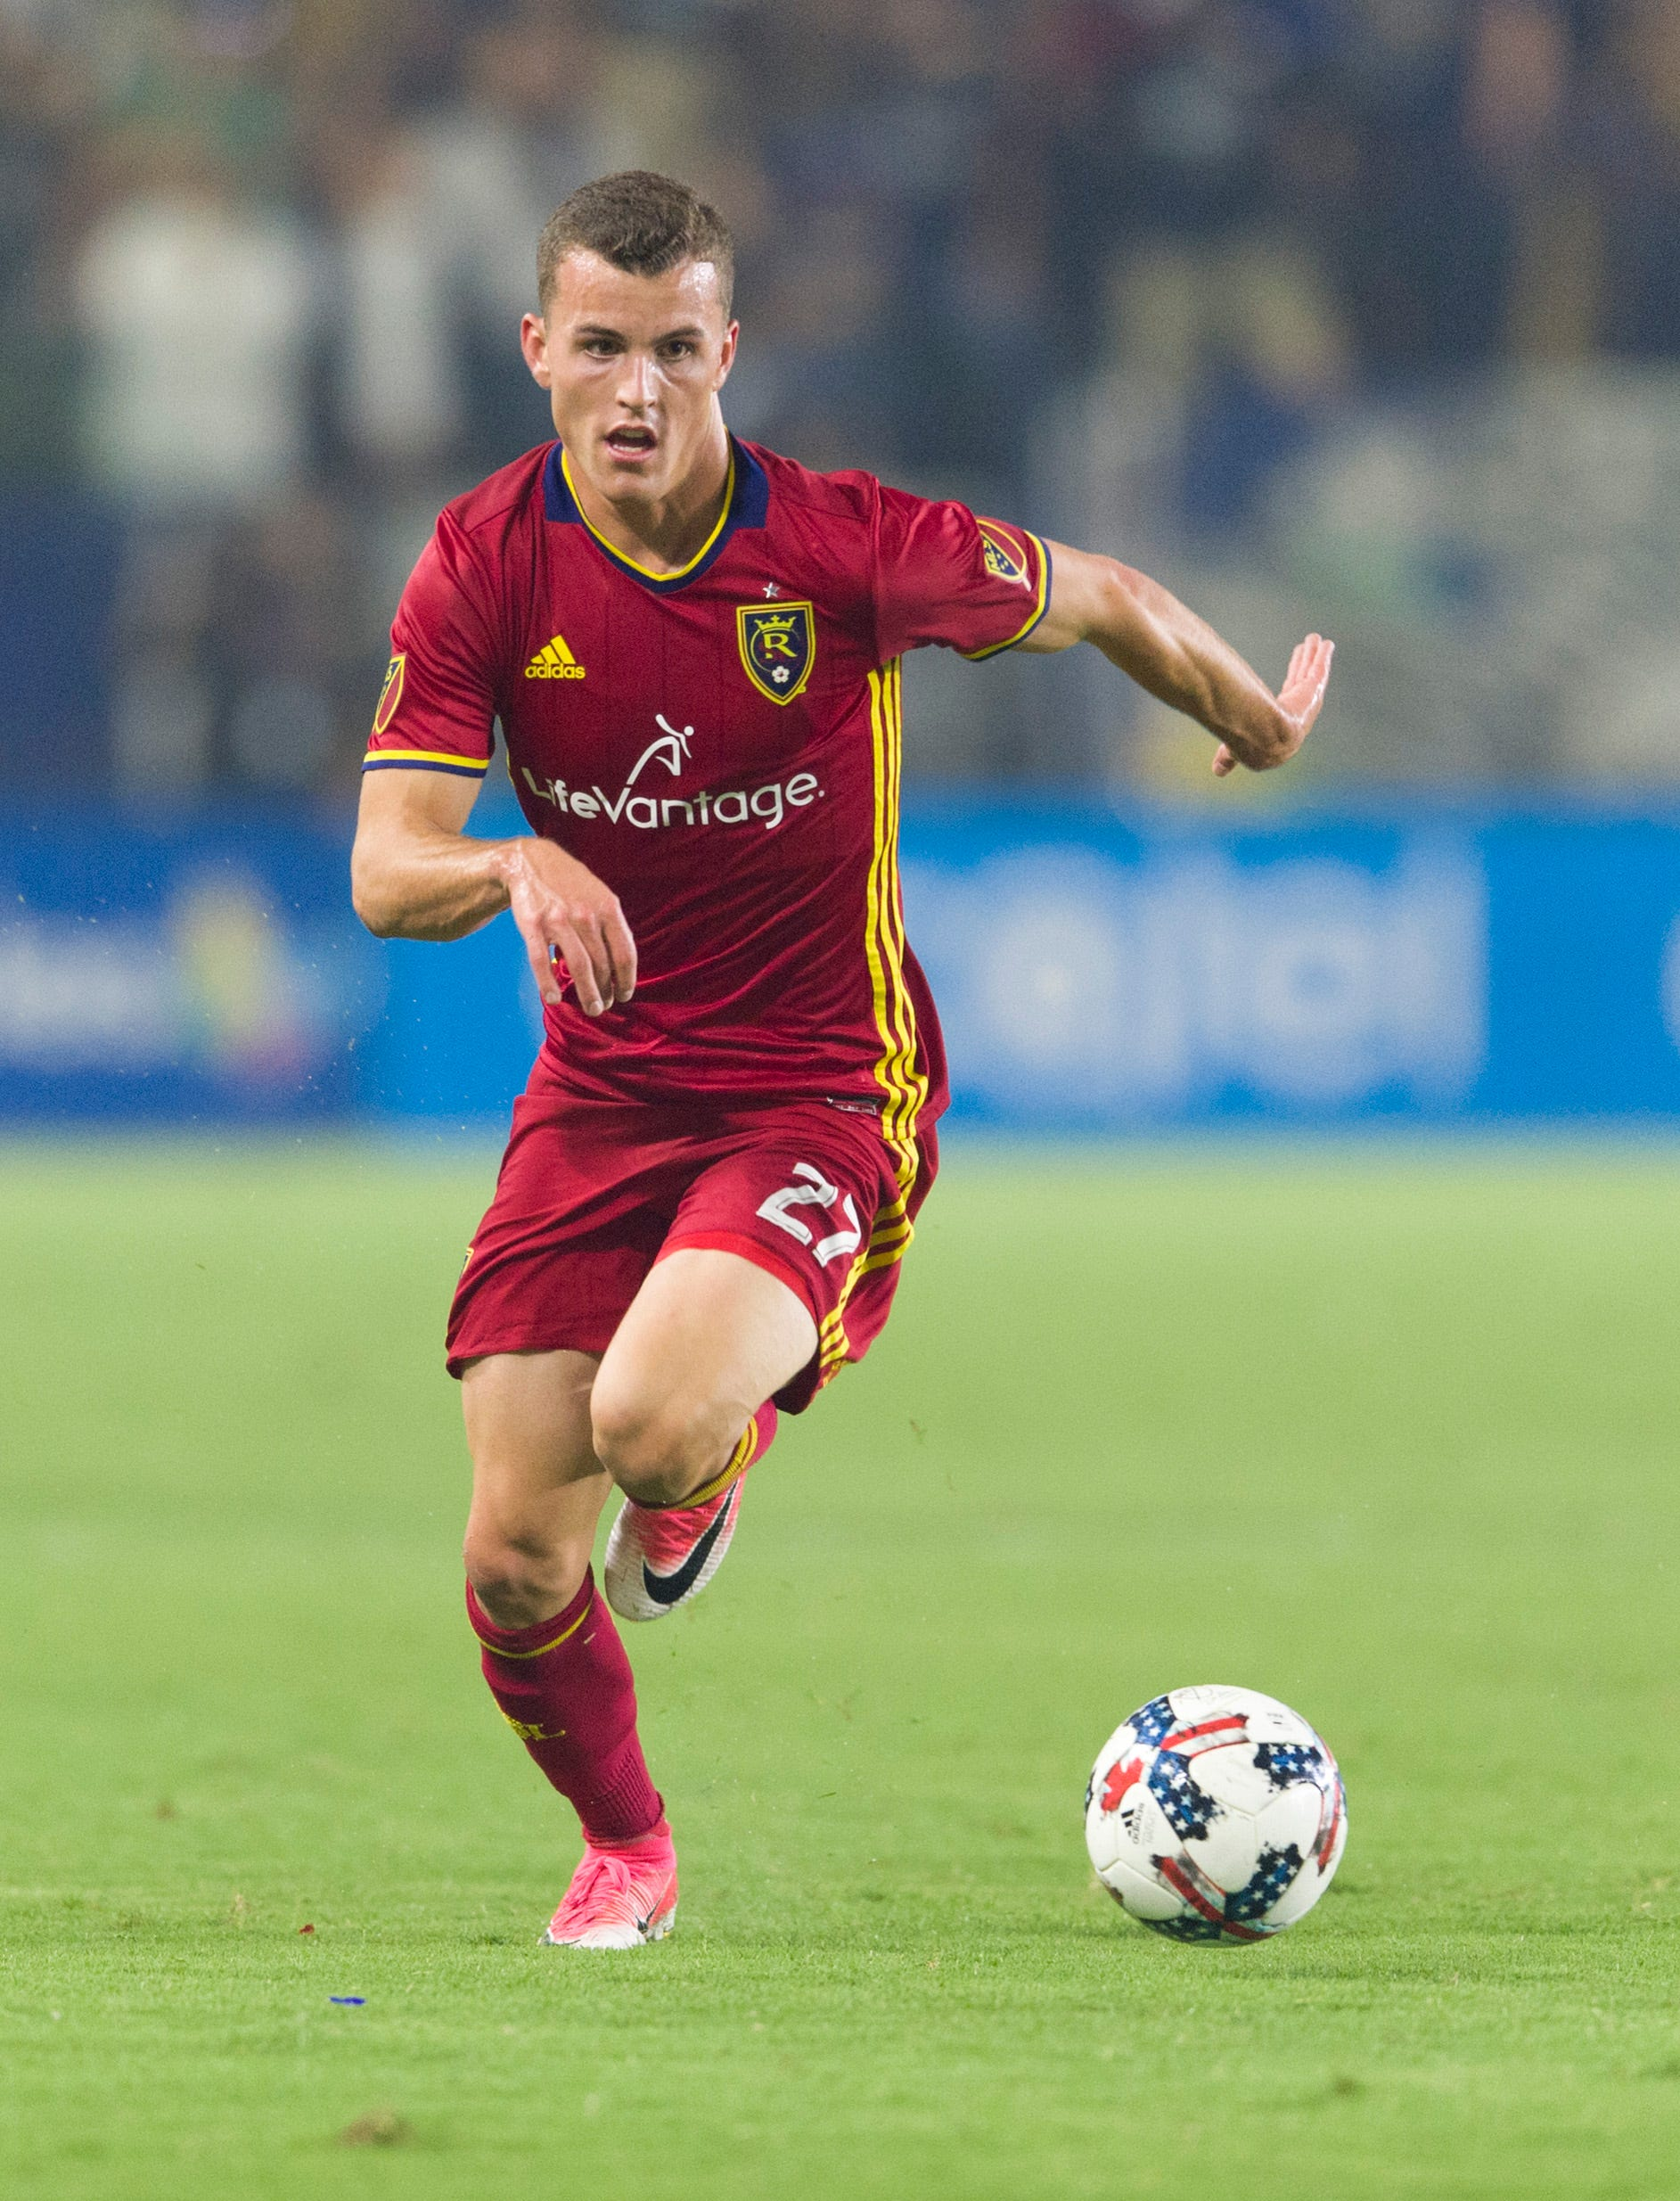 Real Salt Lake rookie Brooks Lennon making most of opportunity while on loan from Liverpool